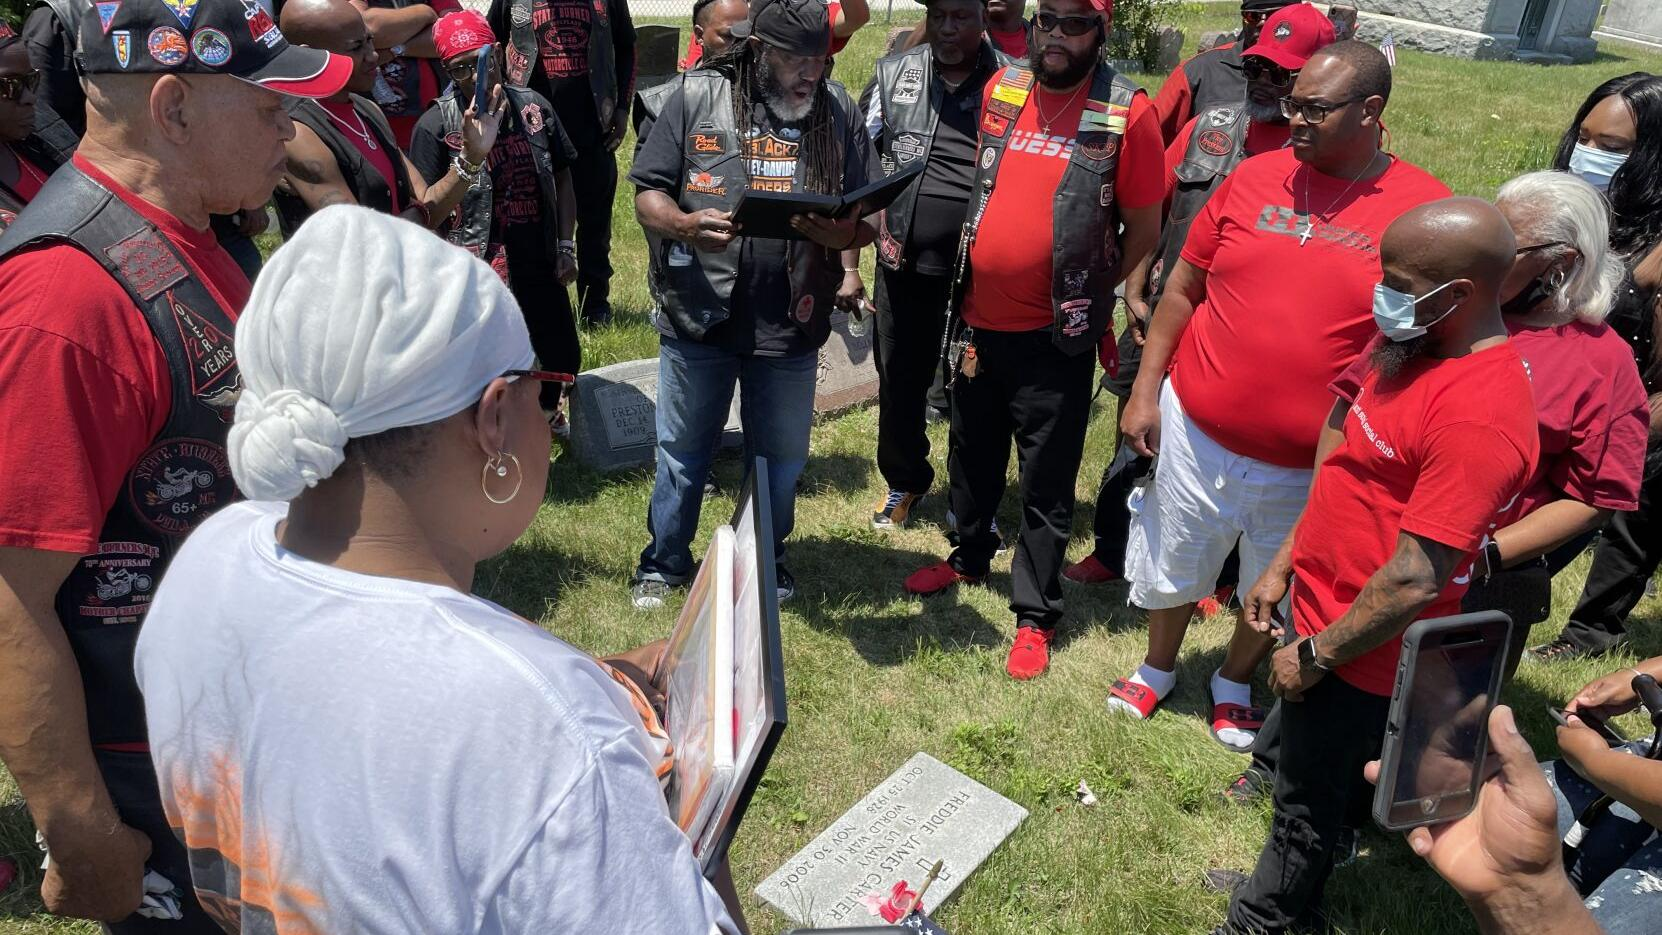 First Black motorcycle club on East Coast celebrates 75 years by finding founder's grave in Pleasantville